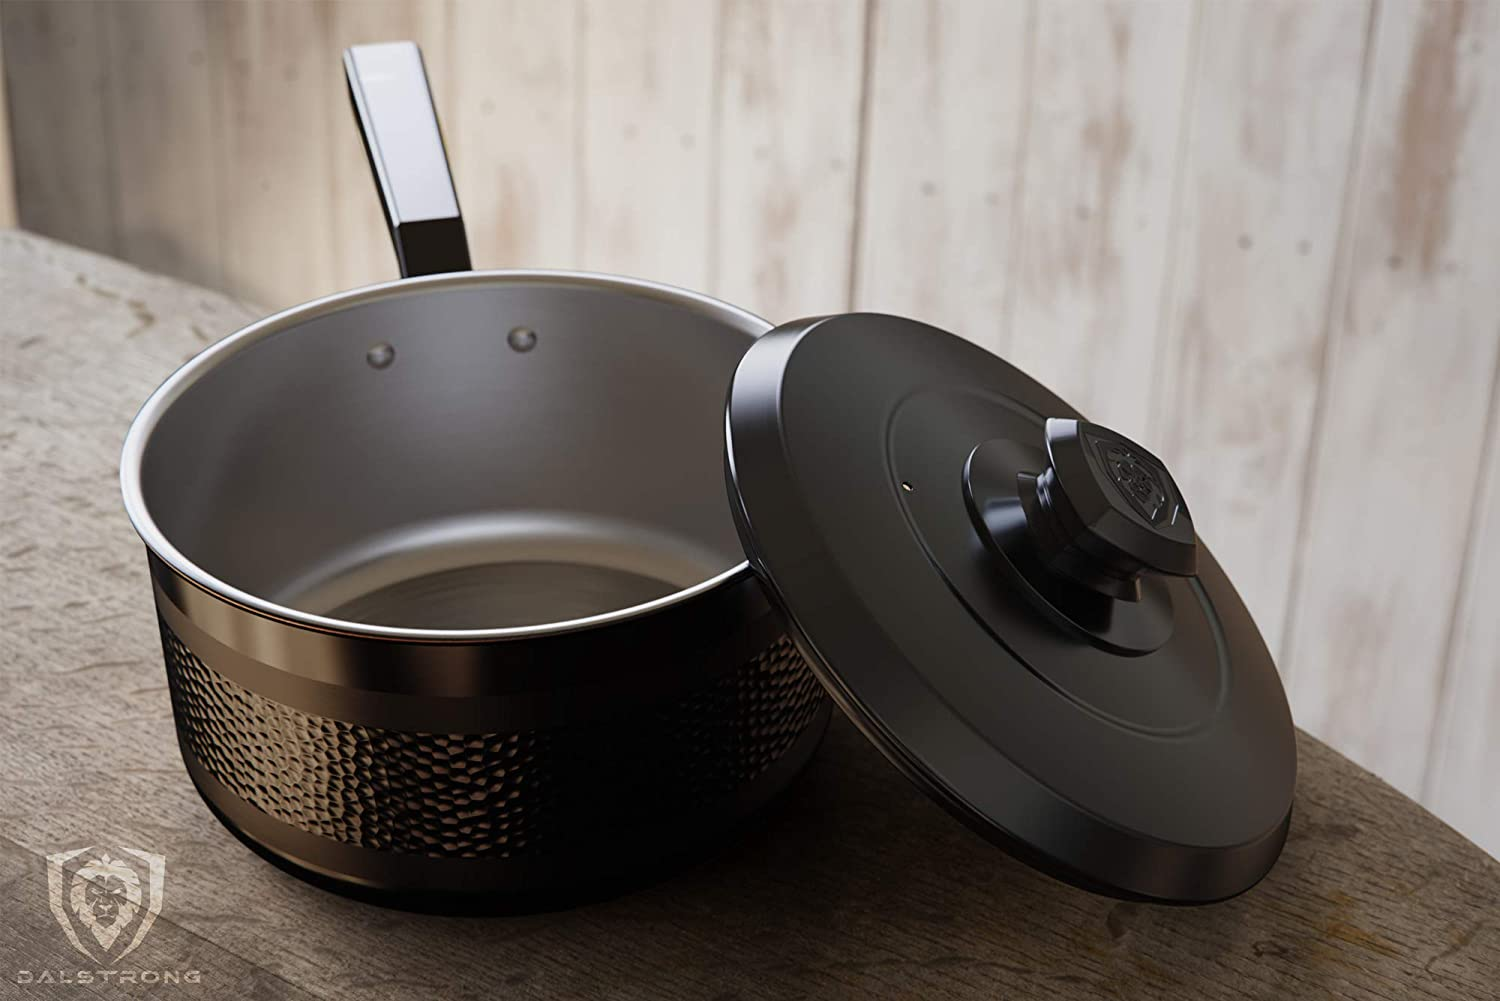 DALSTRONG 3 QT Pot Black Cookware- w//Lid /& Pot Protector 5-Ply Copper Core The Avalon Series Hammered Finish